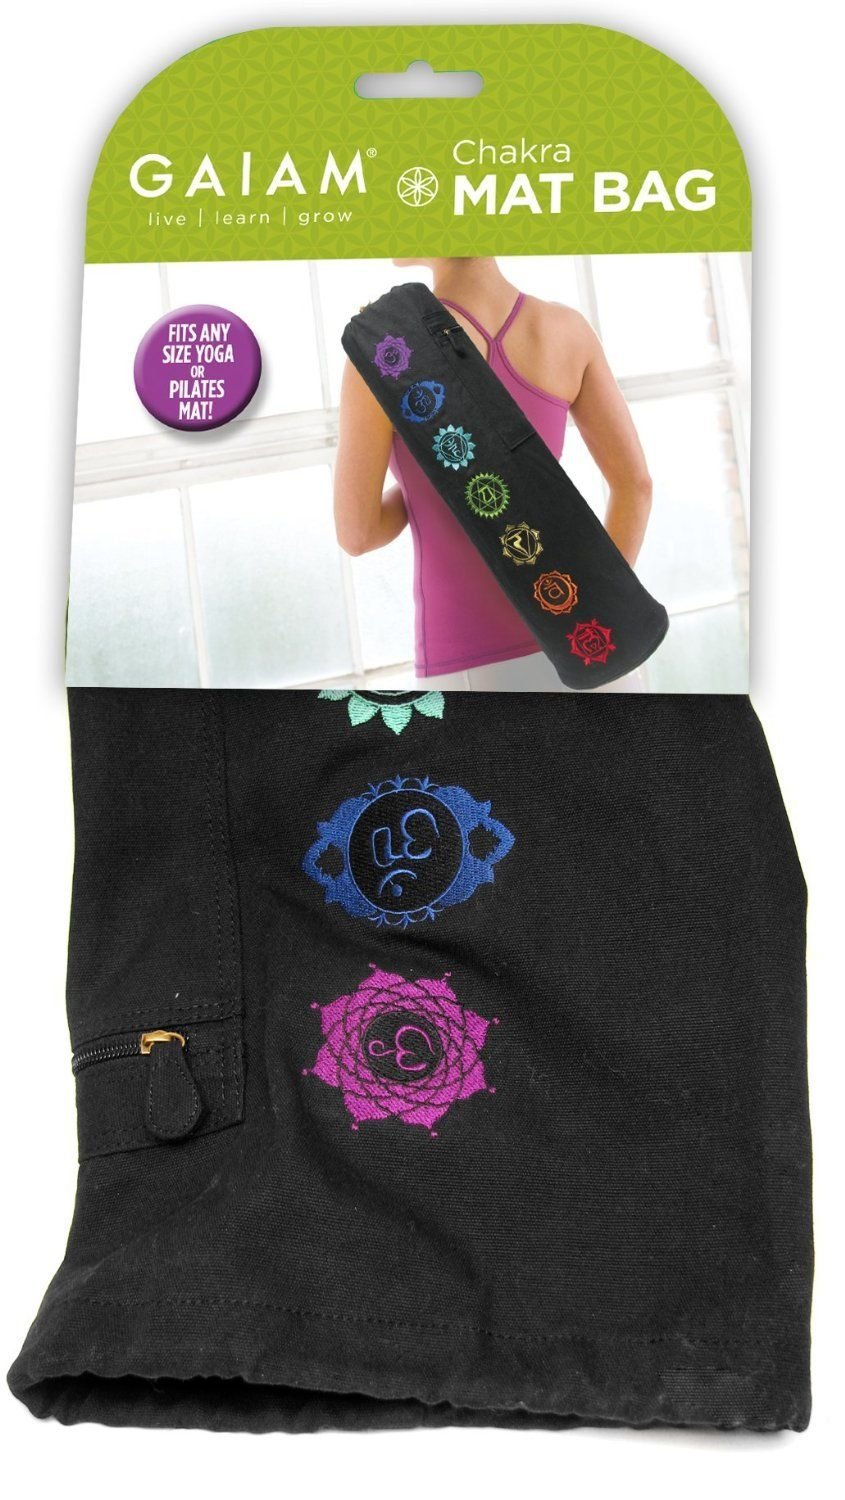 Generic NV_1008002758_YC-US2 ppinged Bag, New, t Bag Chakra Embroidered , Fre Free pping Yoga Mat Shipping Chakra